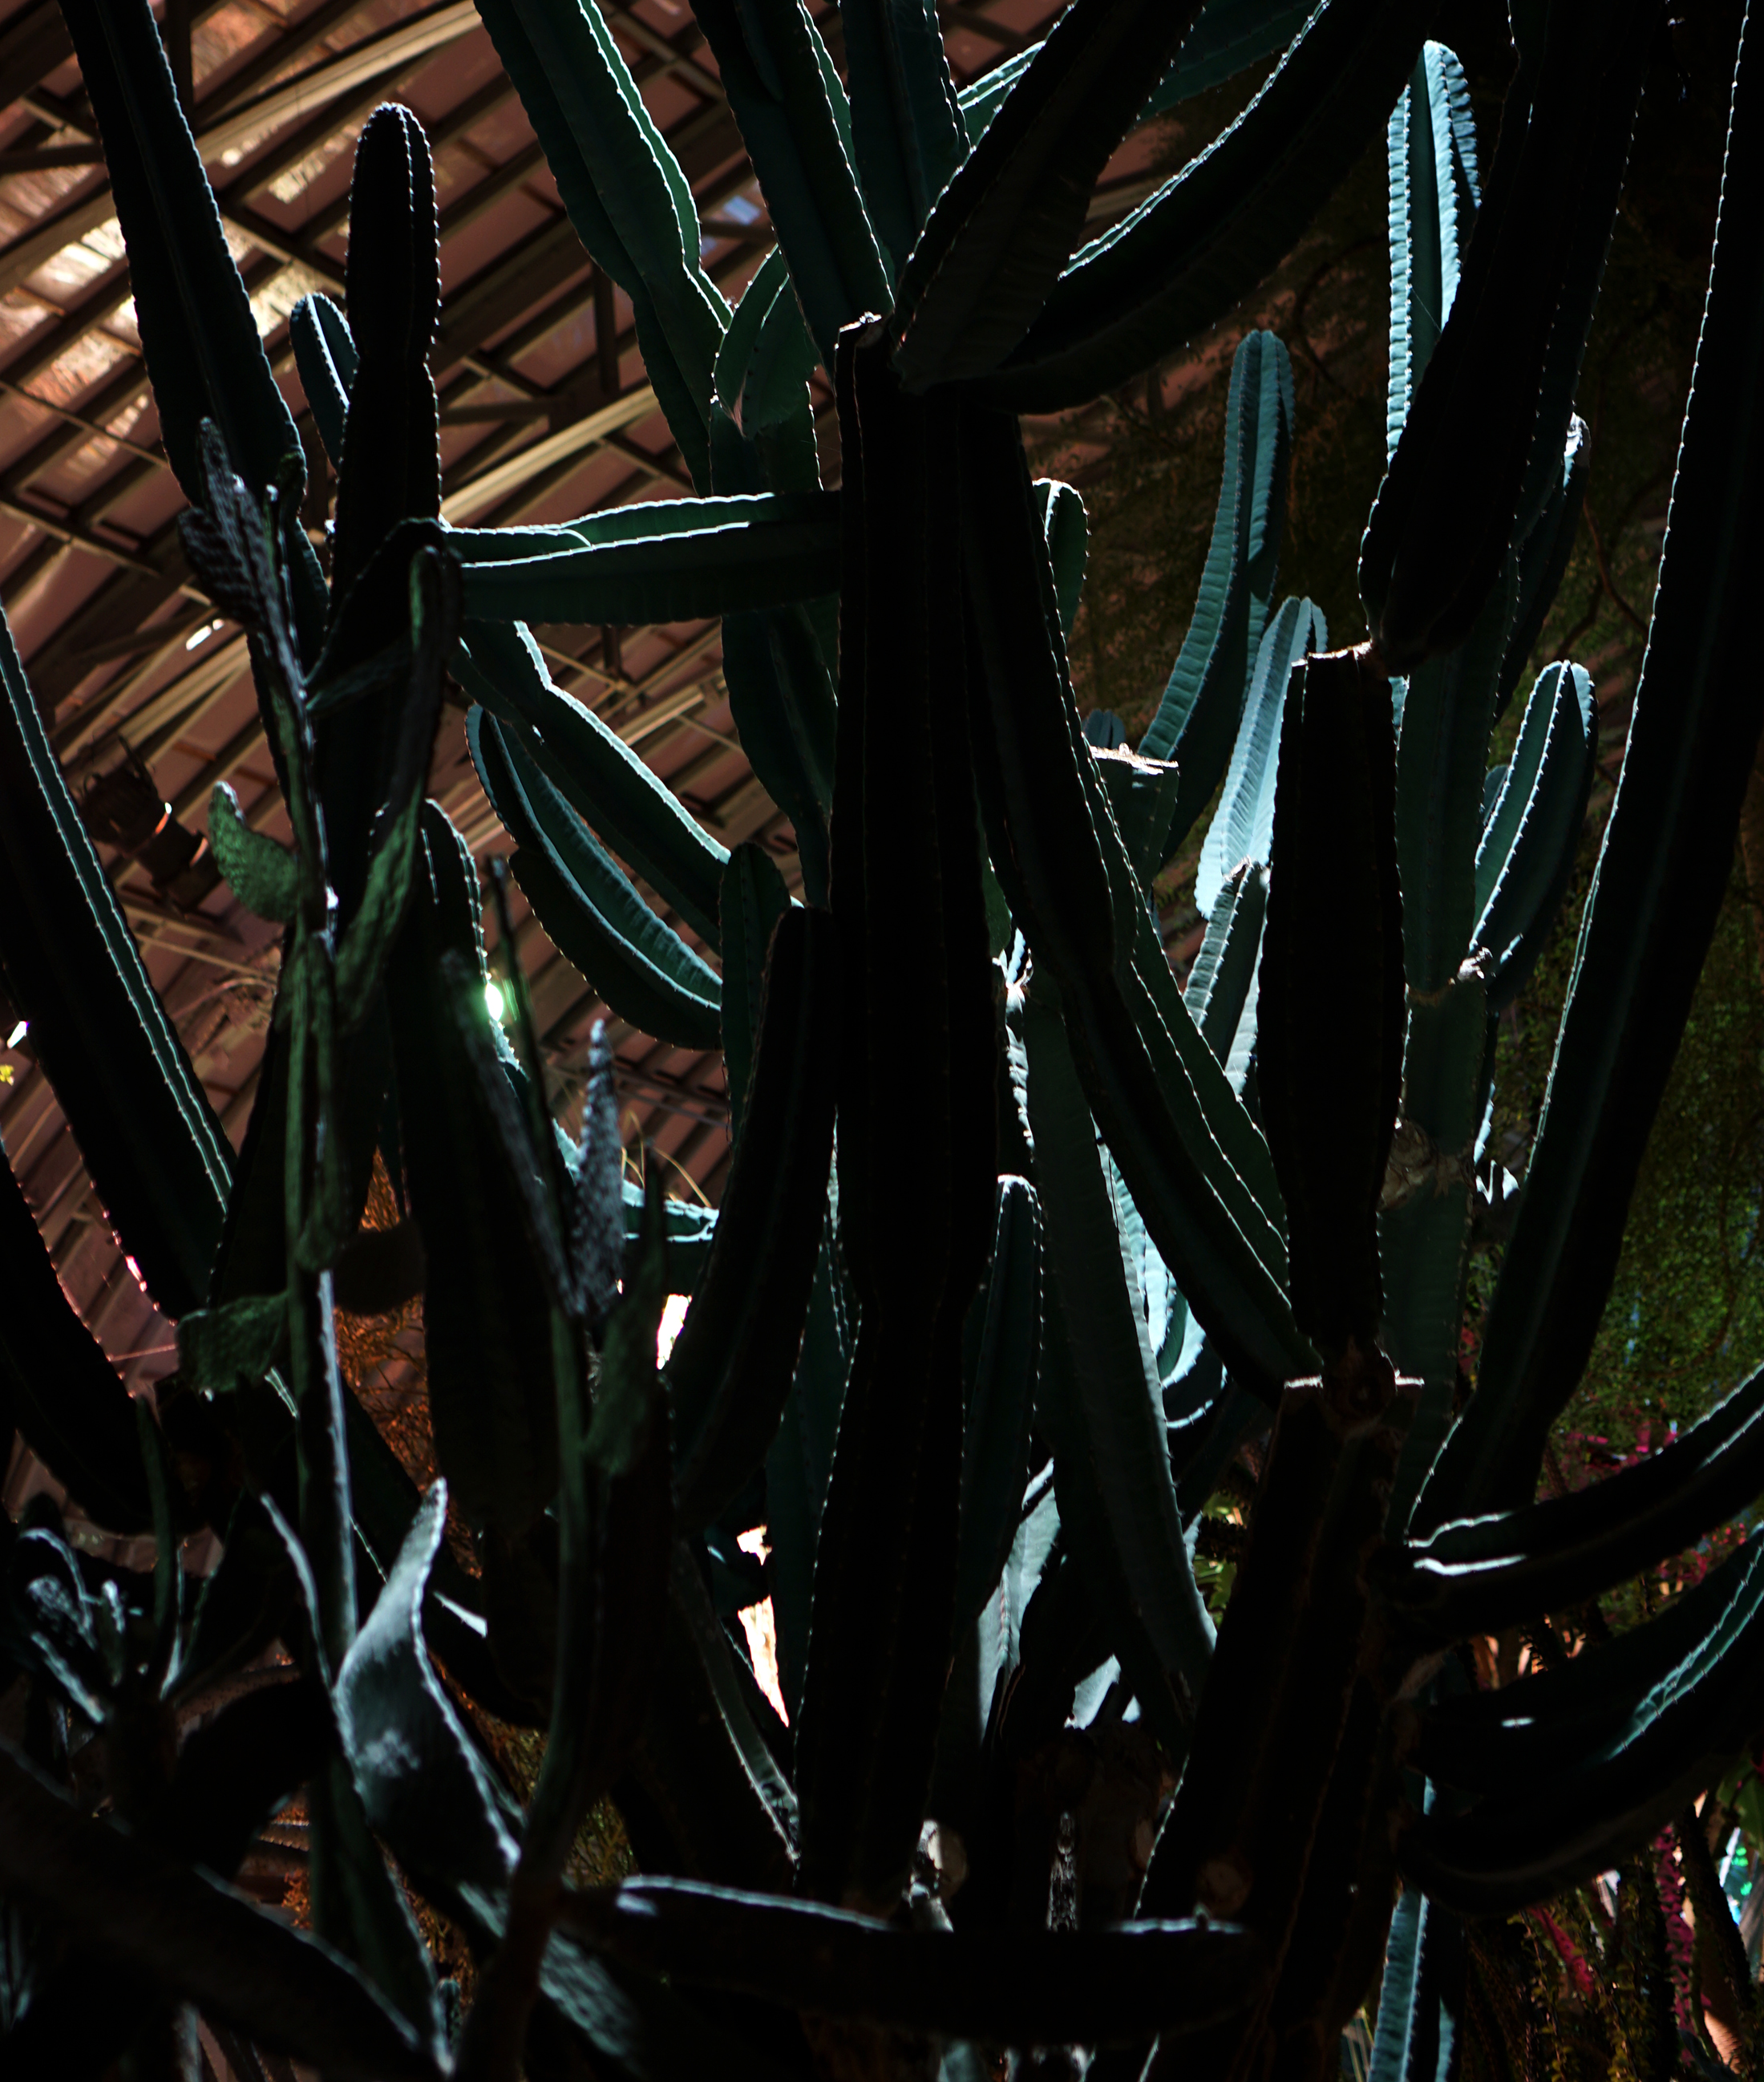 Cactus in the Garfield Park Conservatory at night, Chicago / Darker than Green